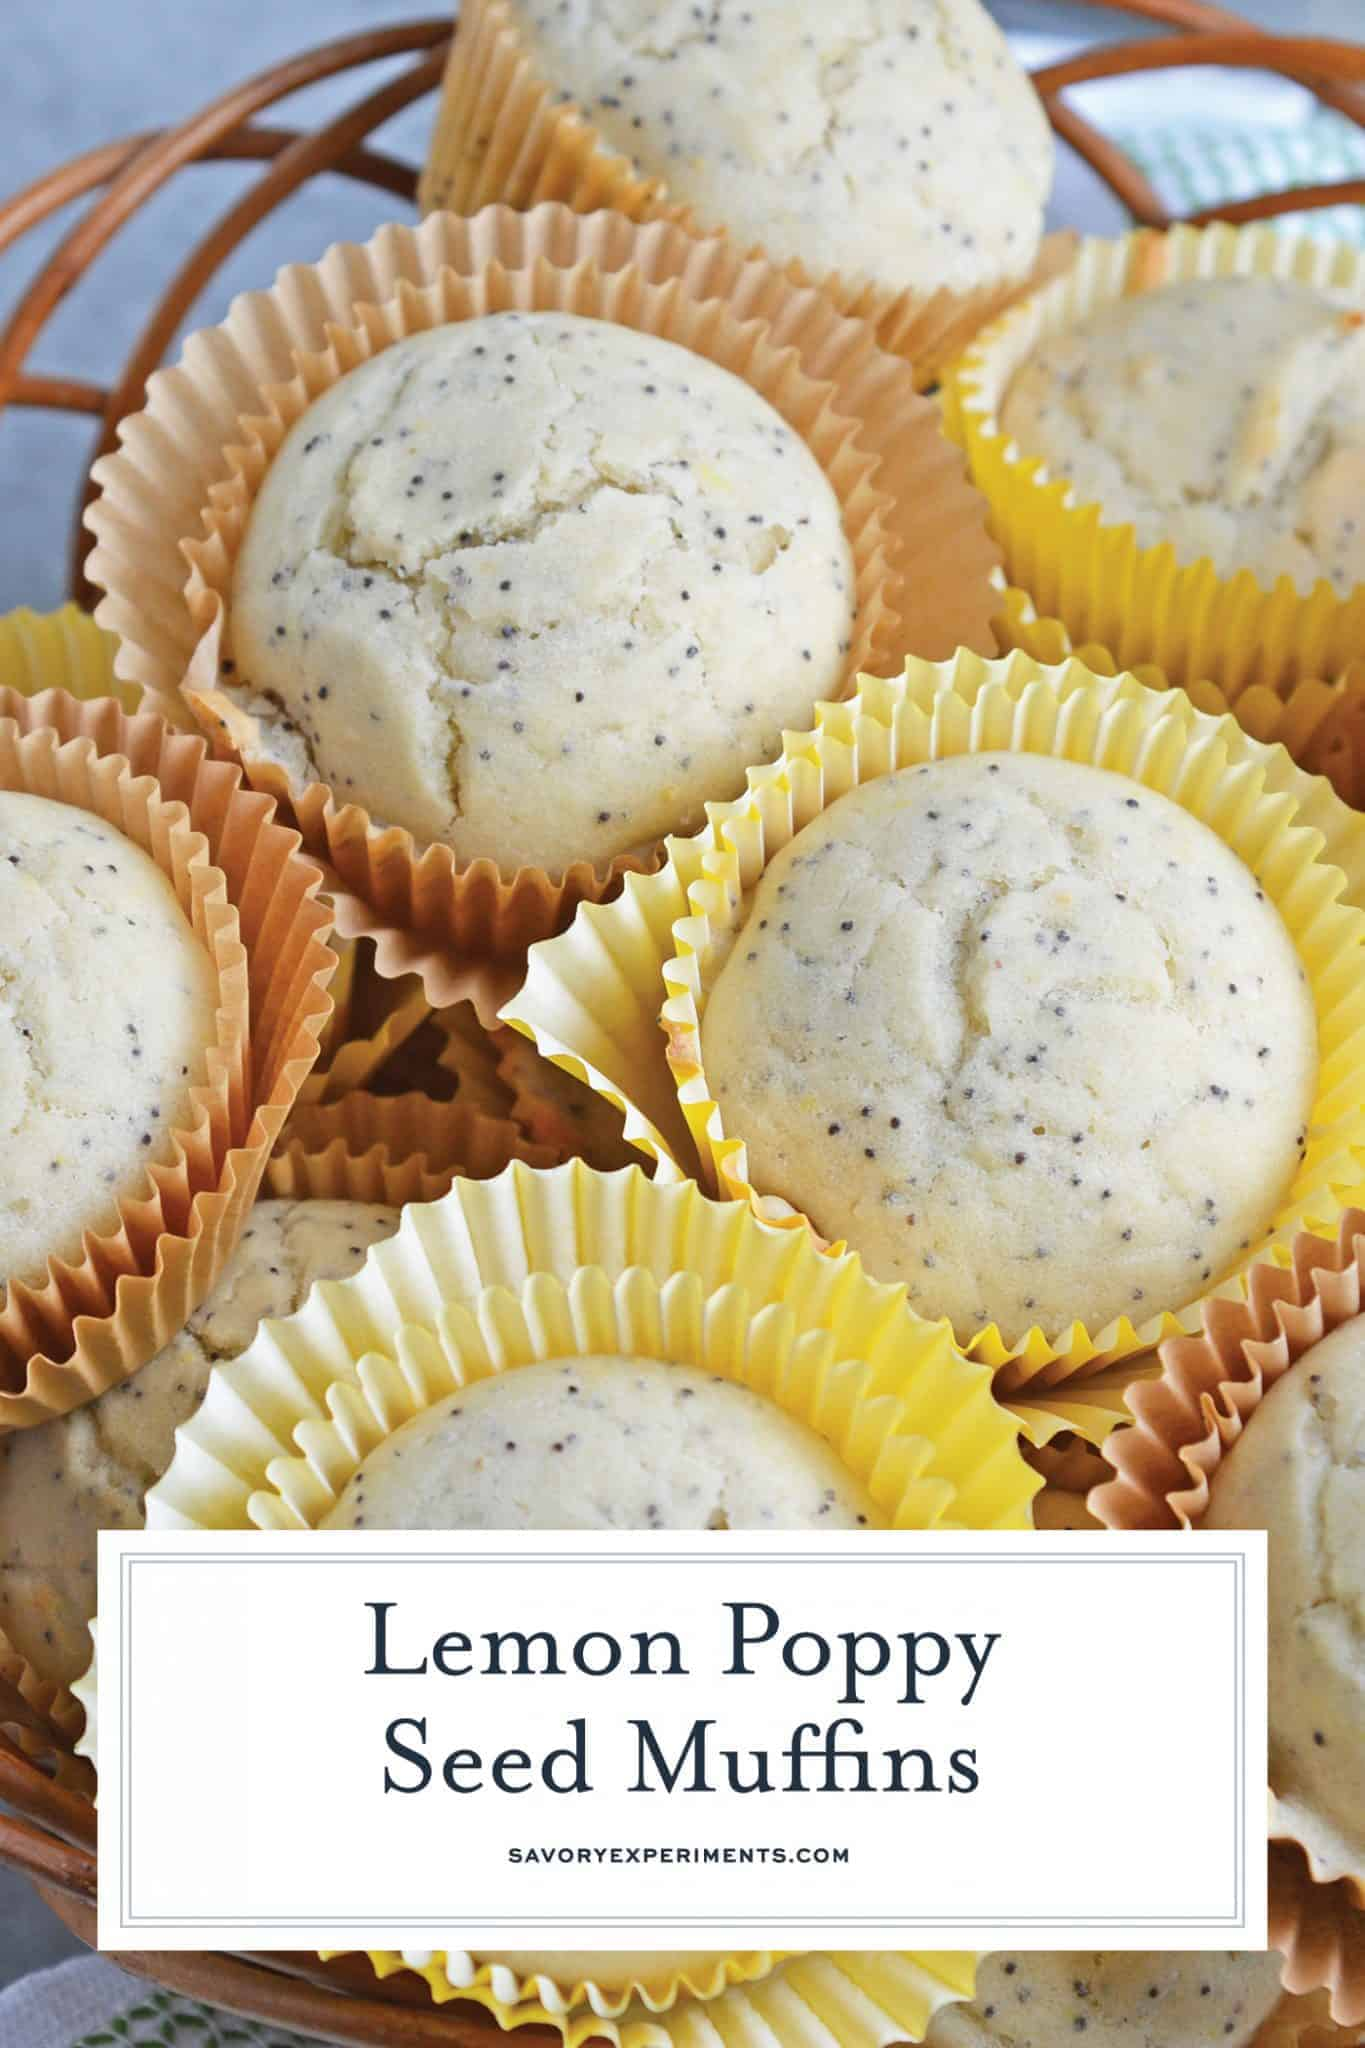 Lemon Poppy Seed Muffins are a quick and easy muffin recipe that can be made in 30 minutes. Carbonated lemon water is the secret ingredient to make them super fluffy! #lemonmuffins #lemonpoppyseedmuffinsrecipe www.savoryexperiments.com